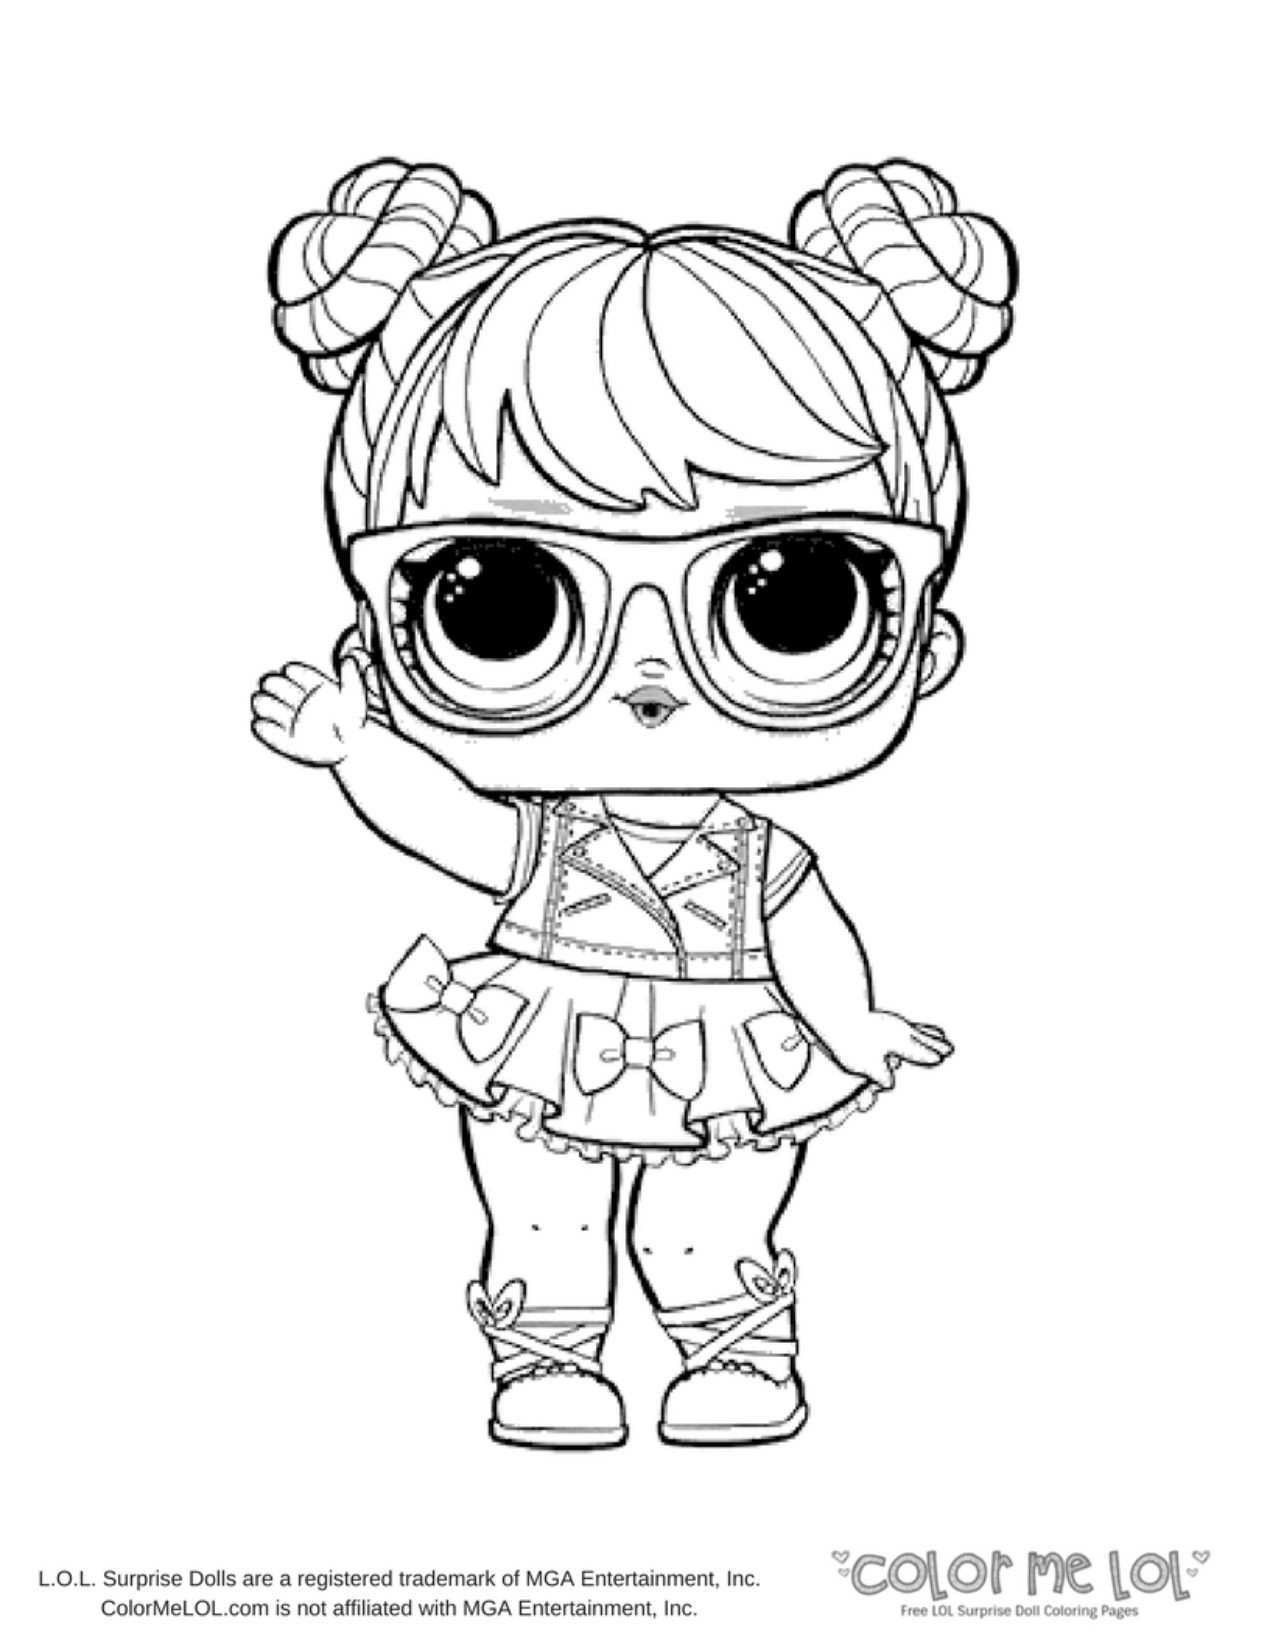 unicorn coloring book glitter drawings of fancy glitter lol shock doll in 2020 unicorn glitter unicorn coloring book